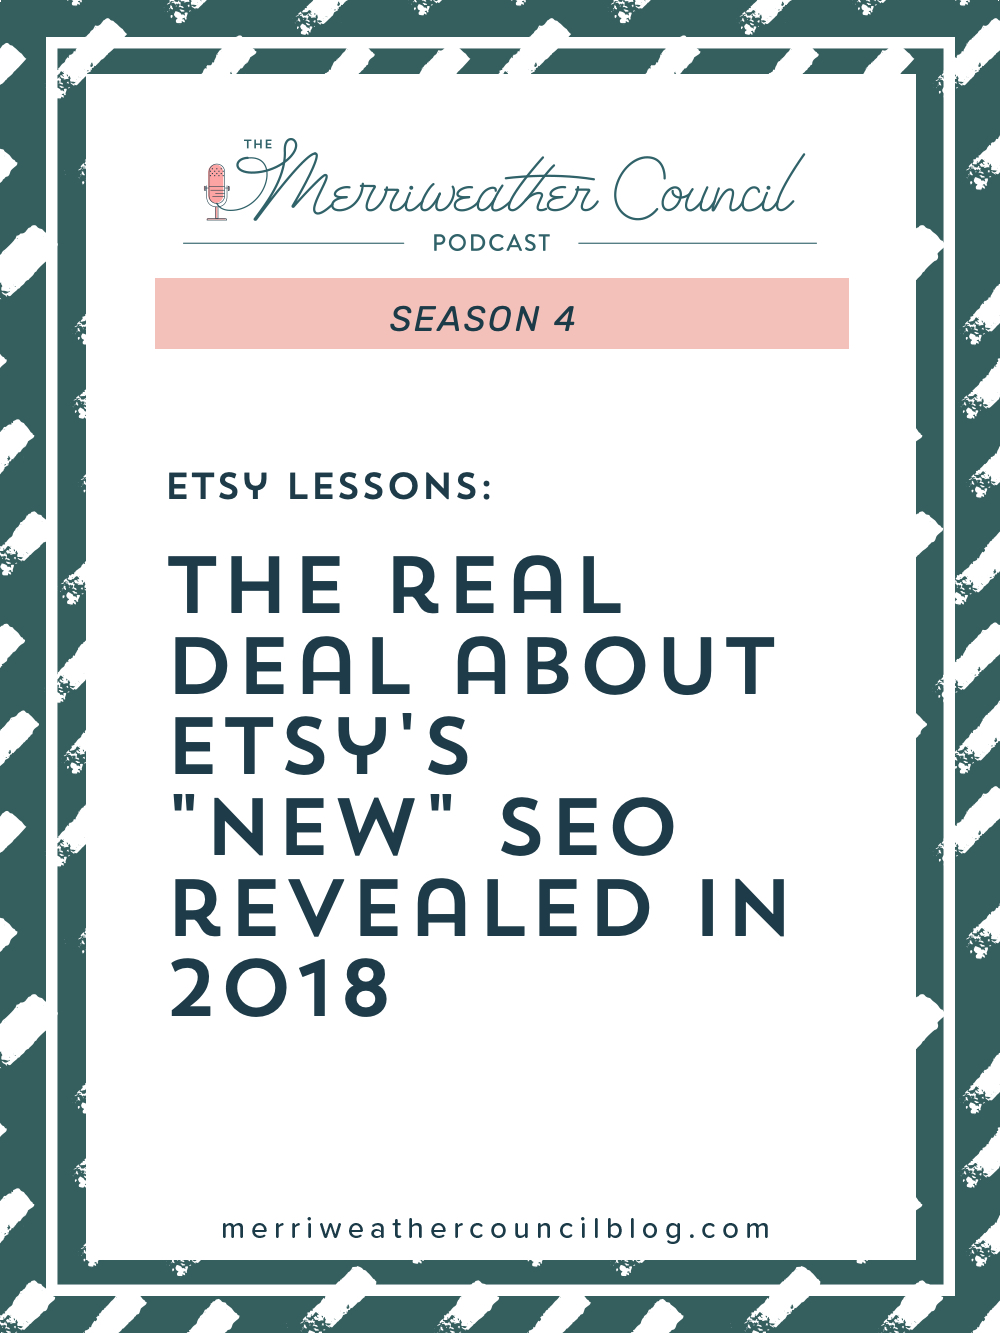 In today's episode we discuss the 2018 Etsy SEO update. I'll put things into perspective and help you understand the facts behind what Etsy did. | The Merriweather Council Podcast